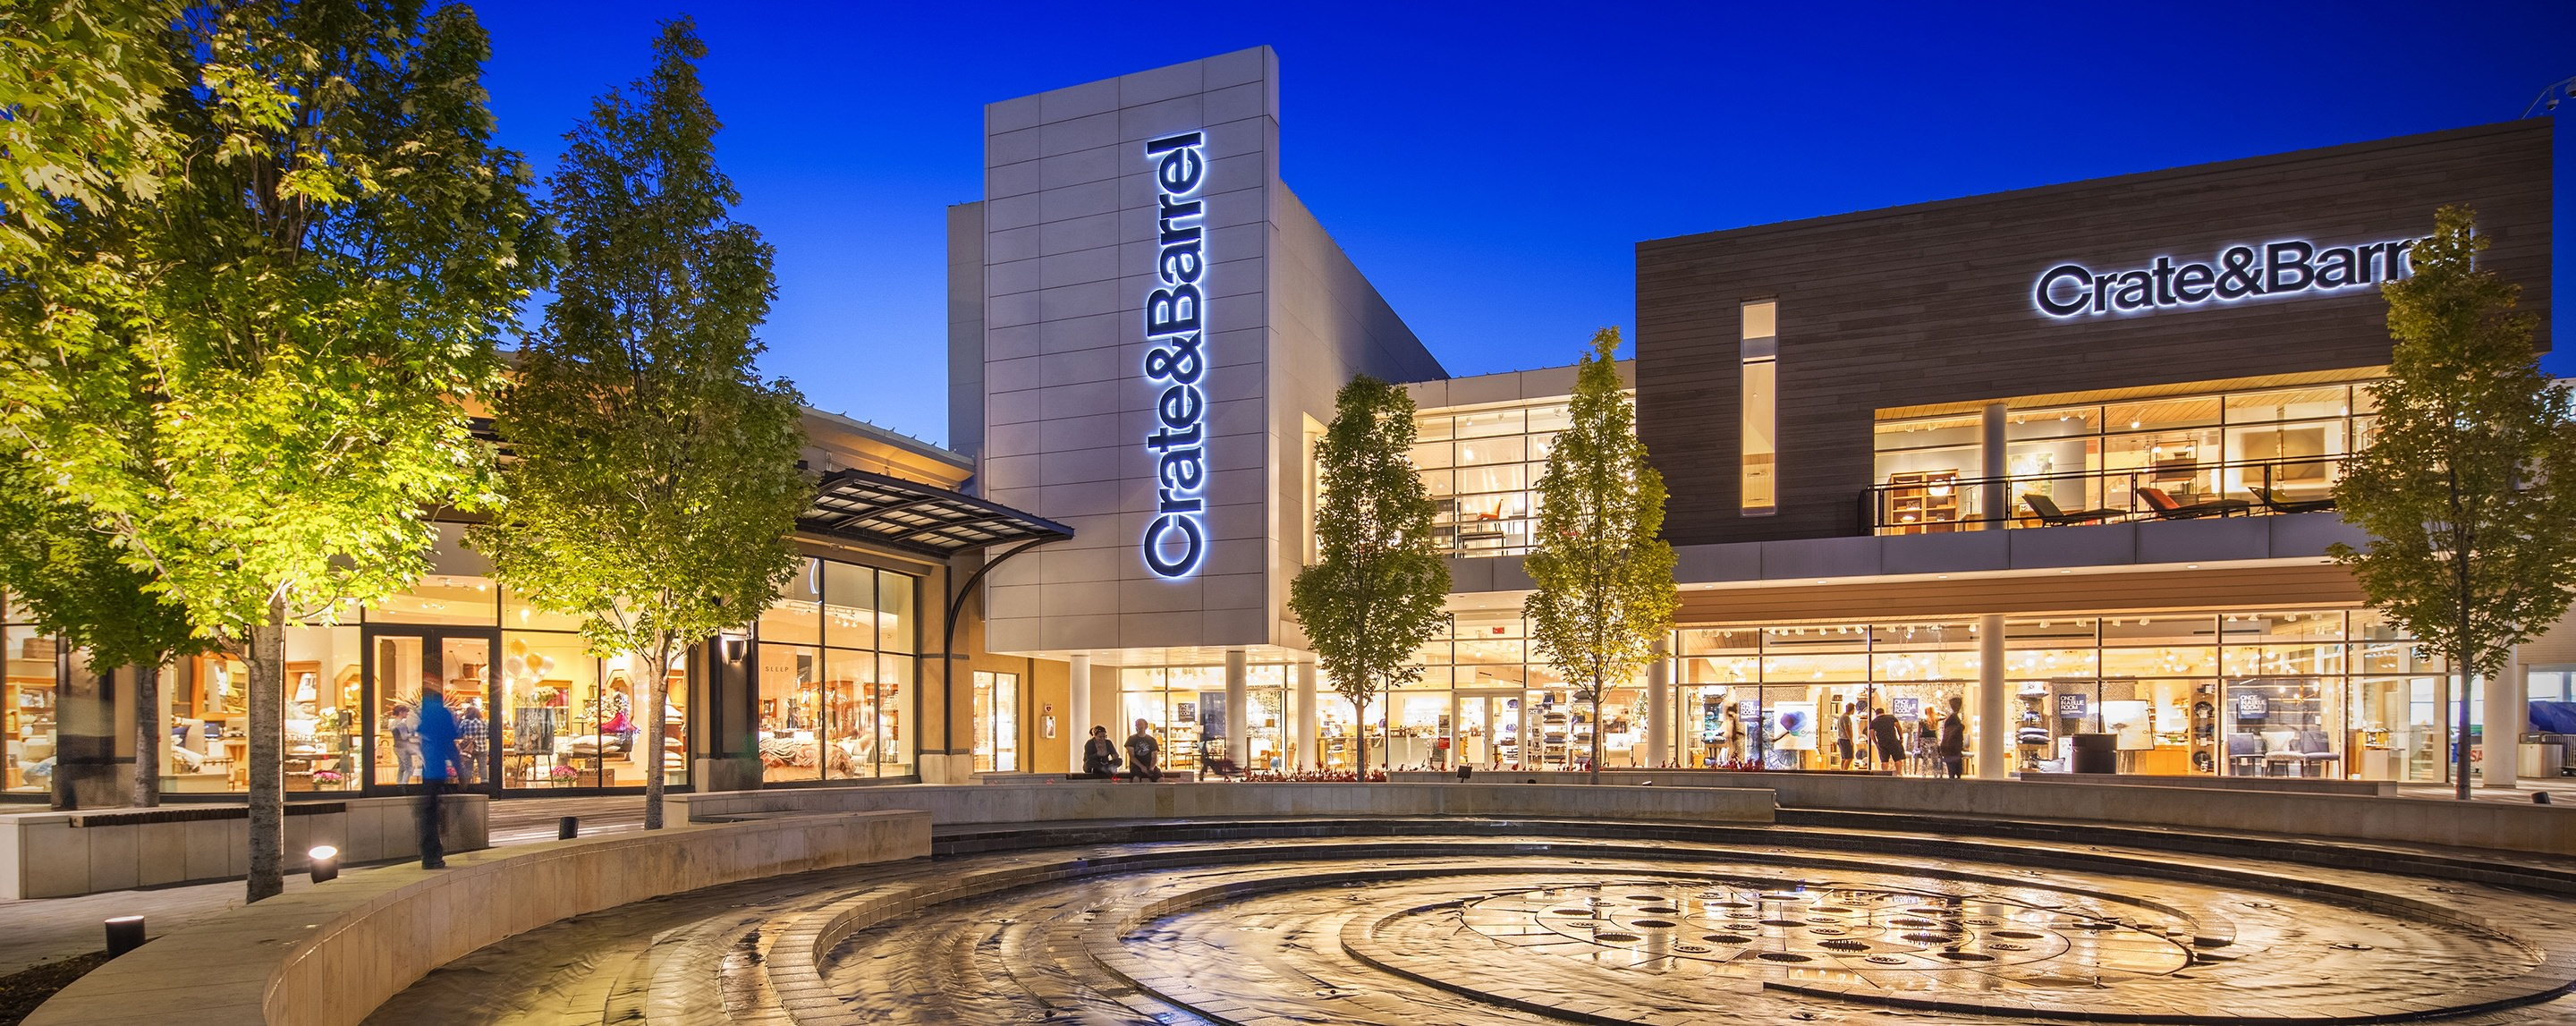 Outside the Oakbrook Center Crate & Barrel, a fountain is a good resting spot for shoppers.